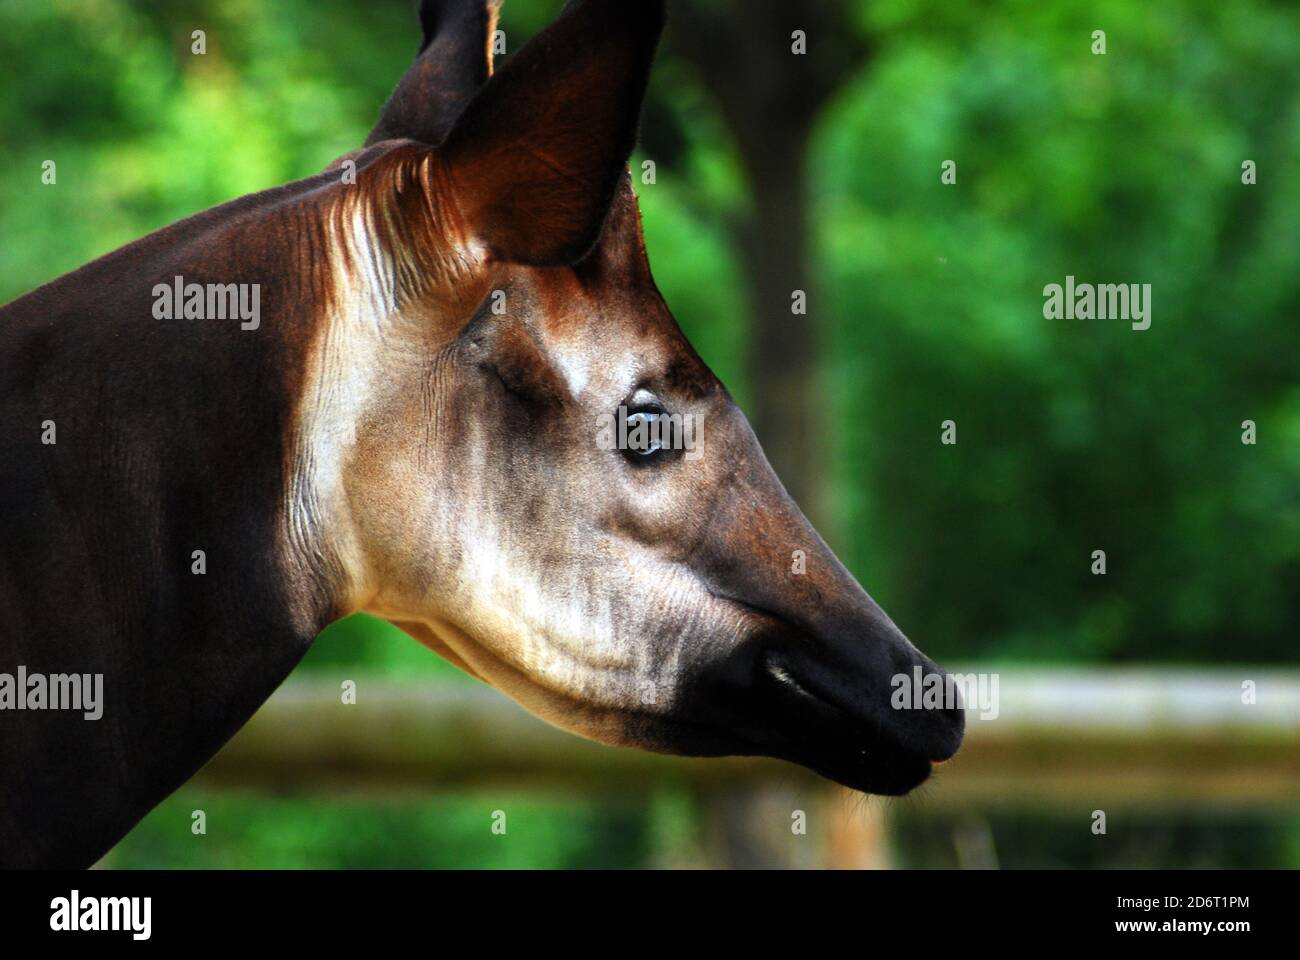 Close-up head and neck of an Okapi (Okapia johnstoni) This endangered species isalso known as the Forest Giraffe, Congolese Giraffe, or Zebra Giraffe Stock Photo